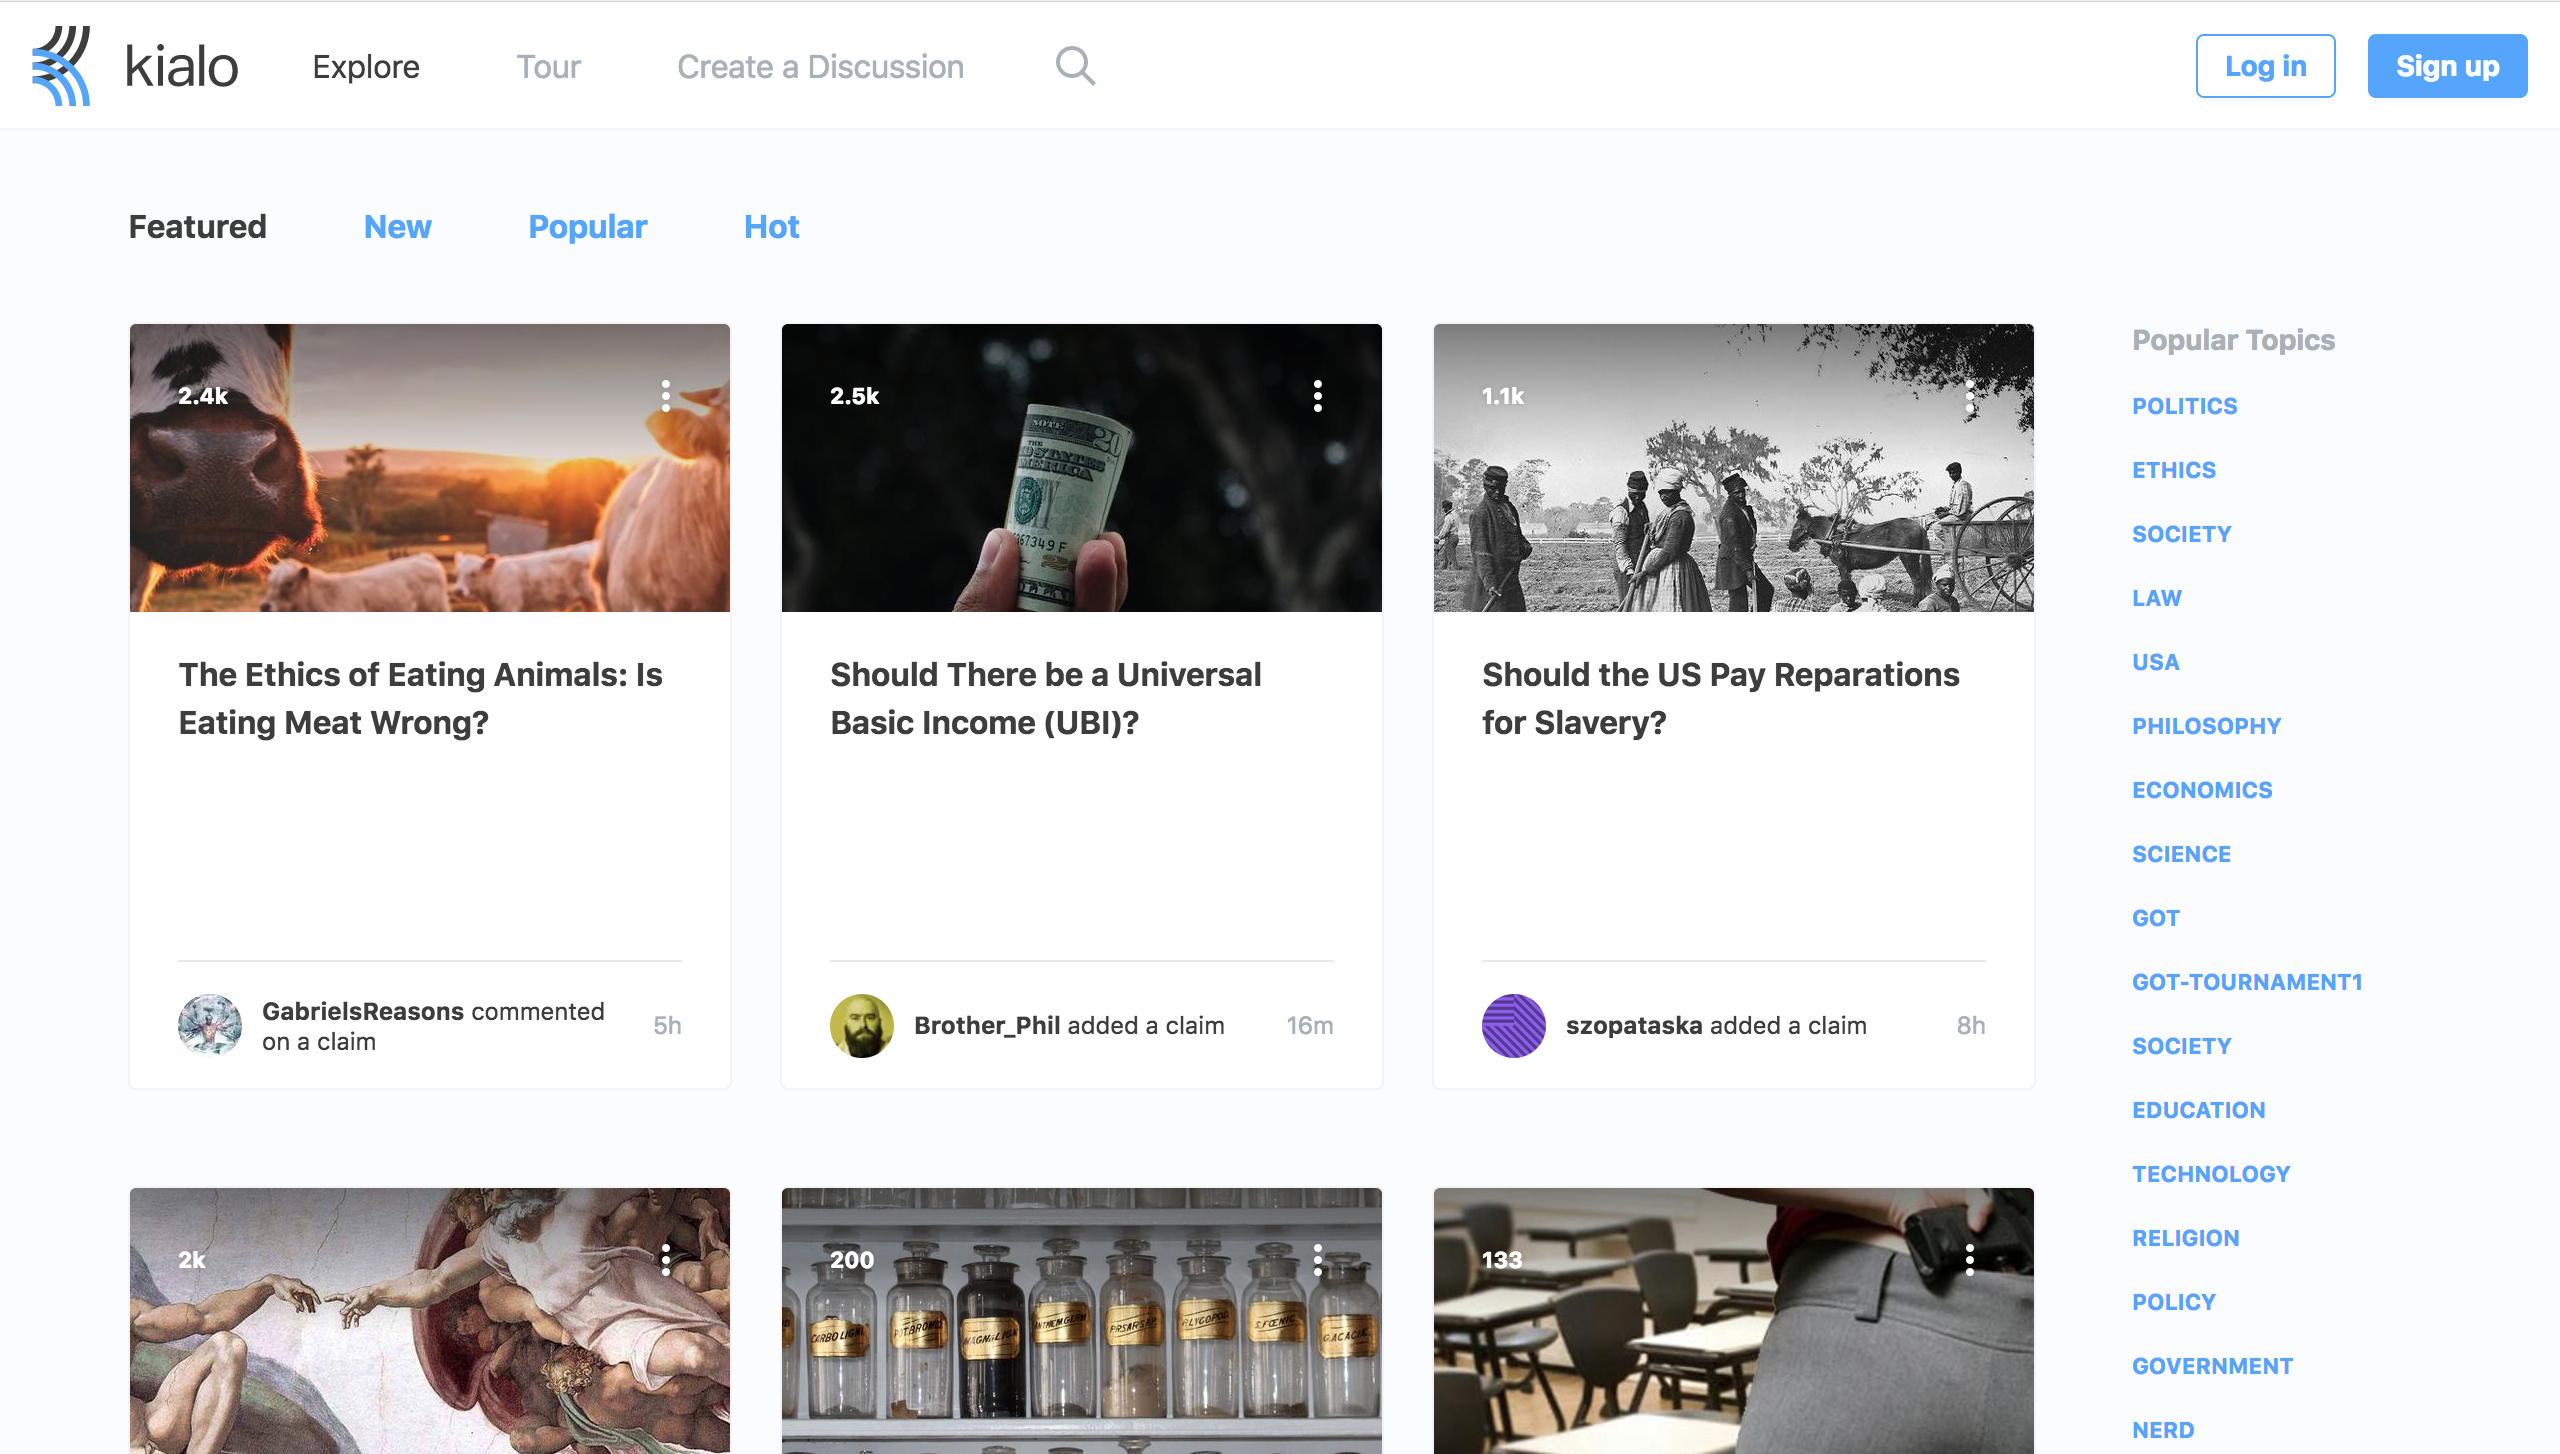 """Kialo """"Explore"""" page showing existing debate topics ready for users to join."""